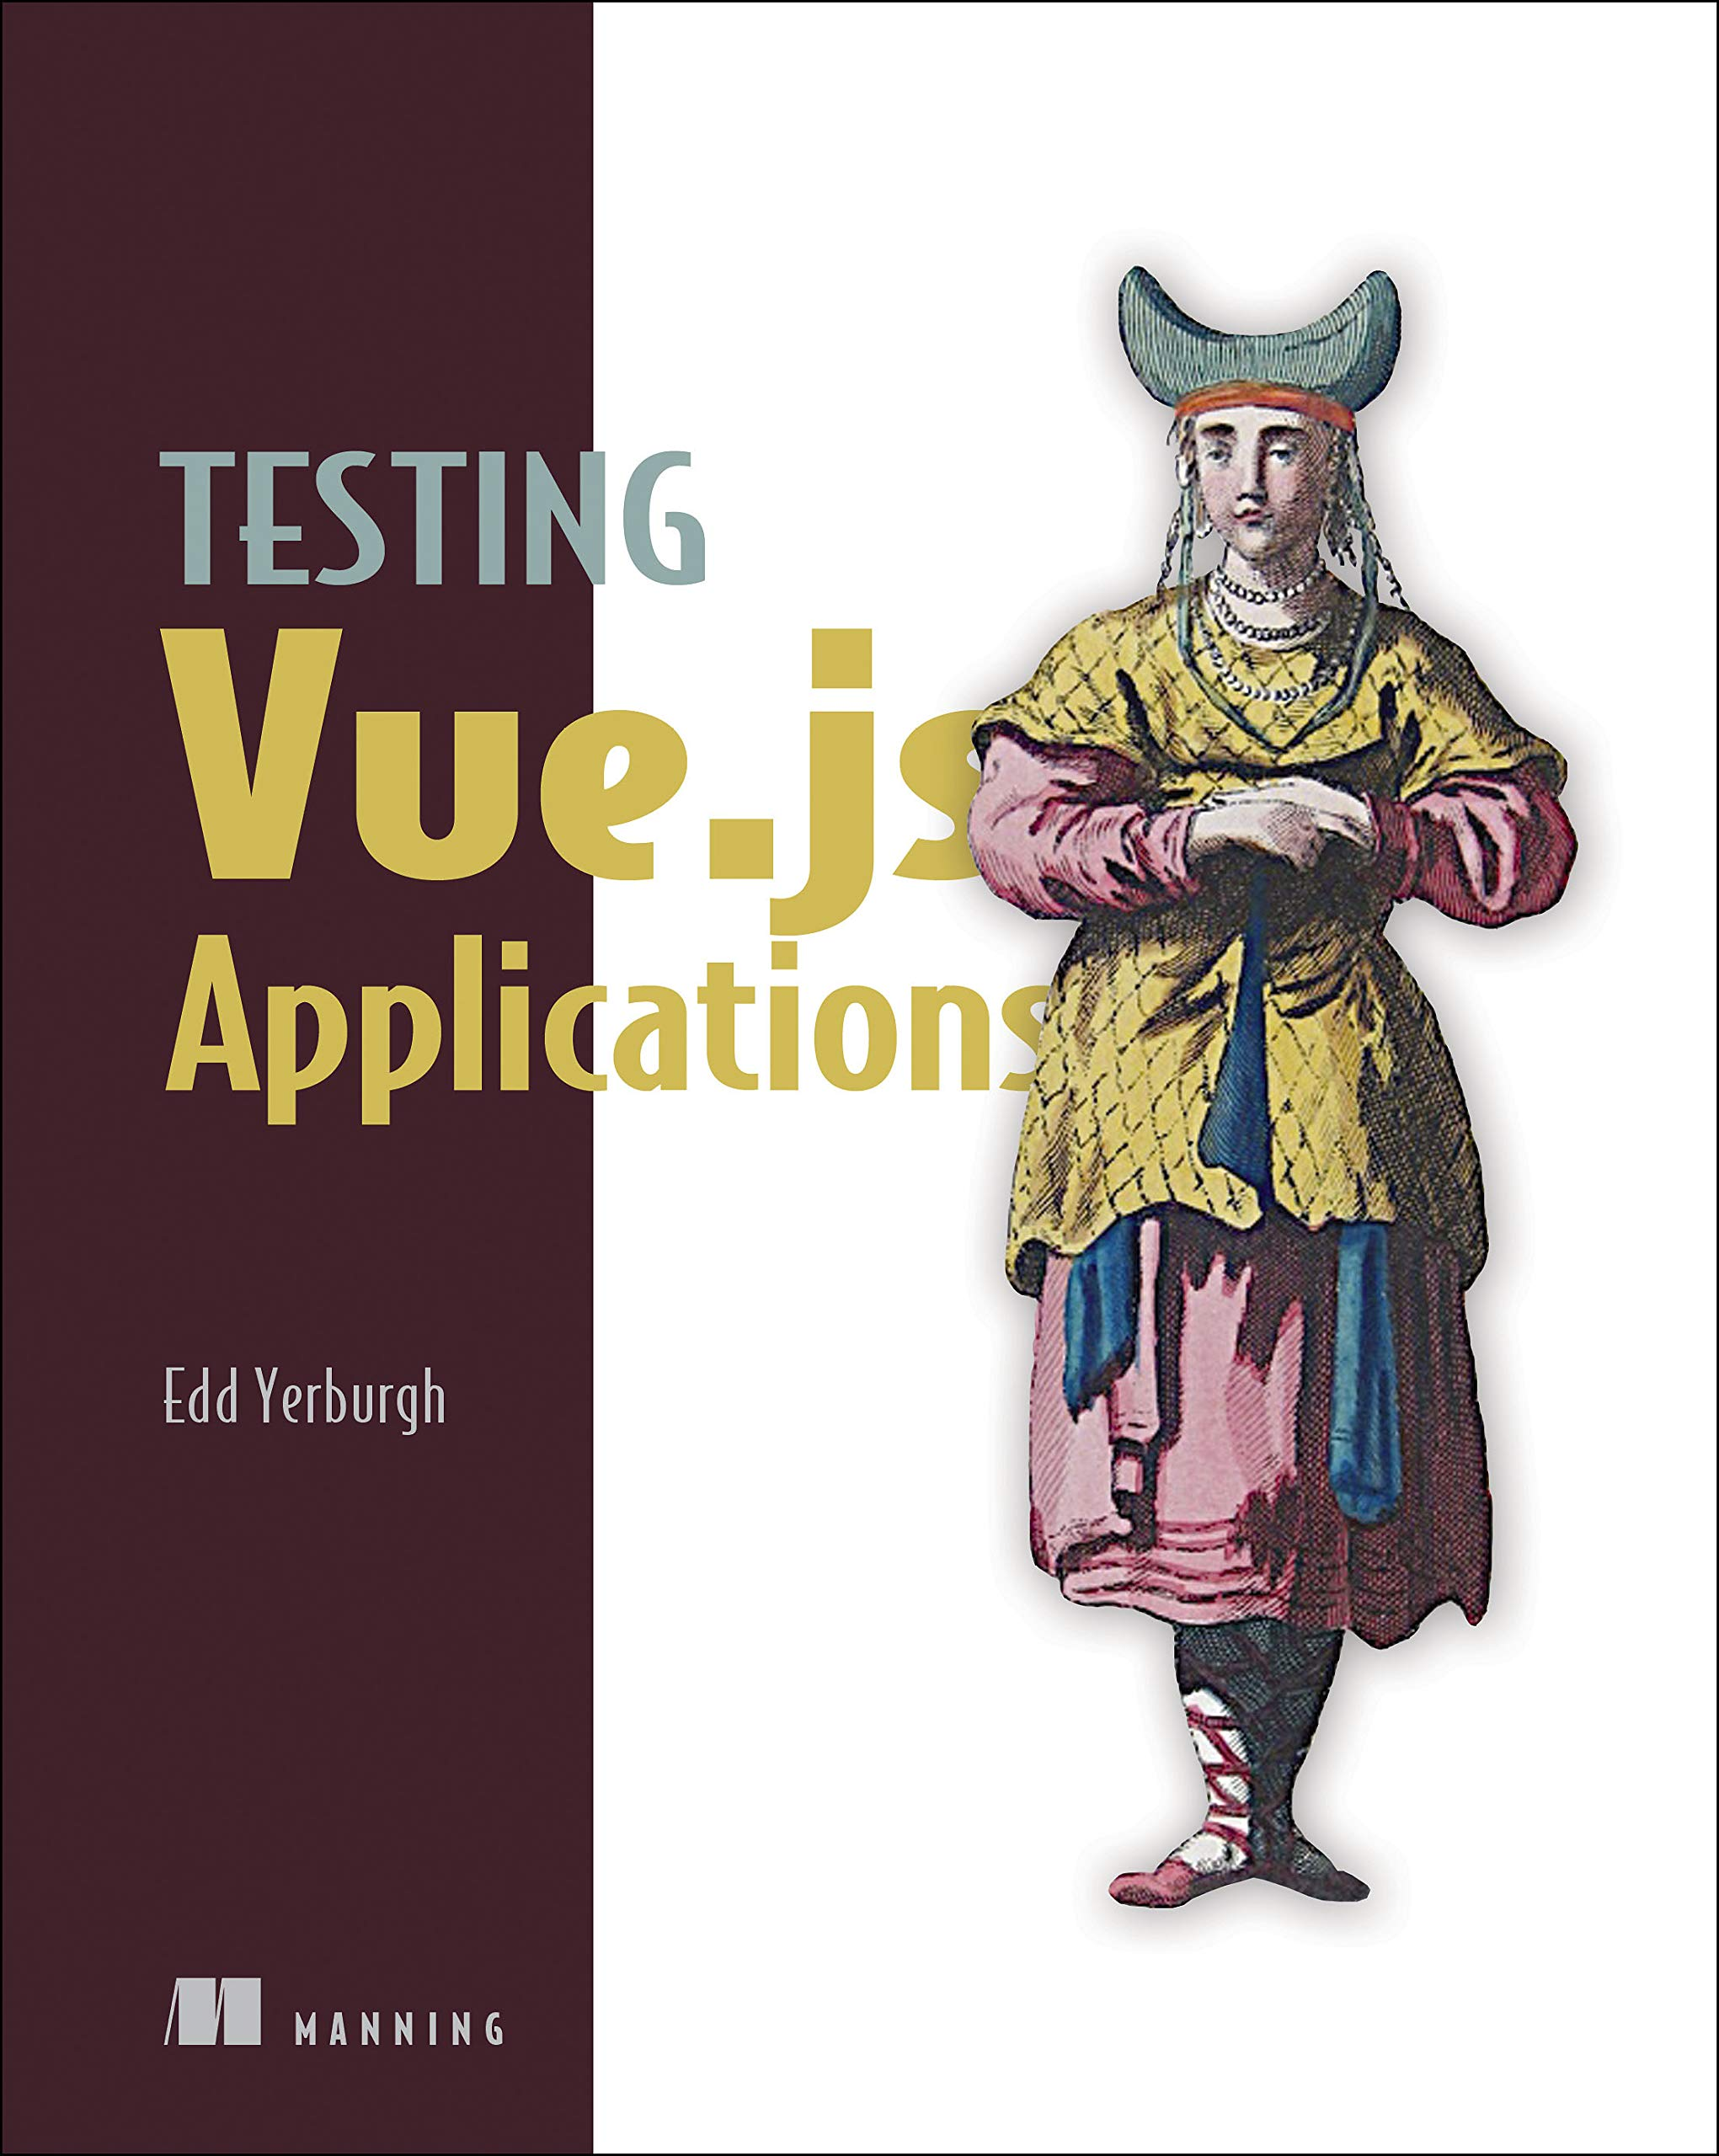 Testing Vue.js Applications por Edd Yerburgh